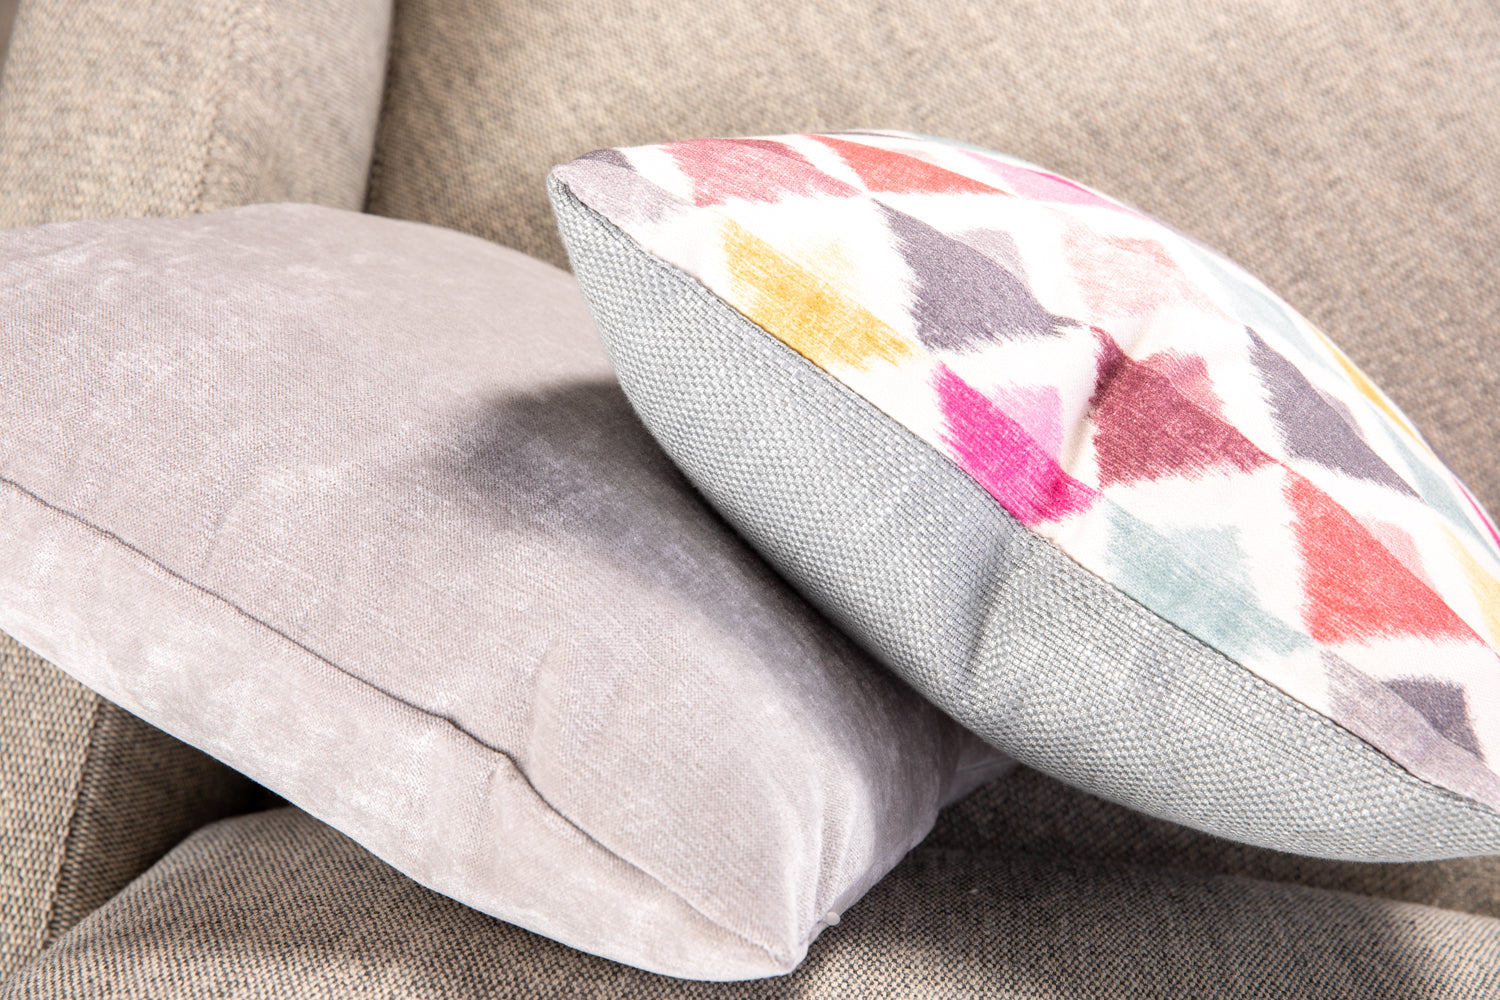 ffabb toss pillows RADG and Maxwell fabrics triangle weave